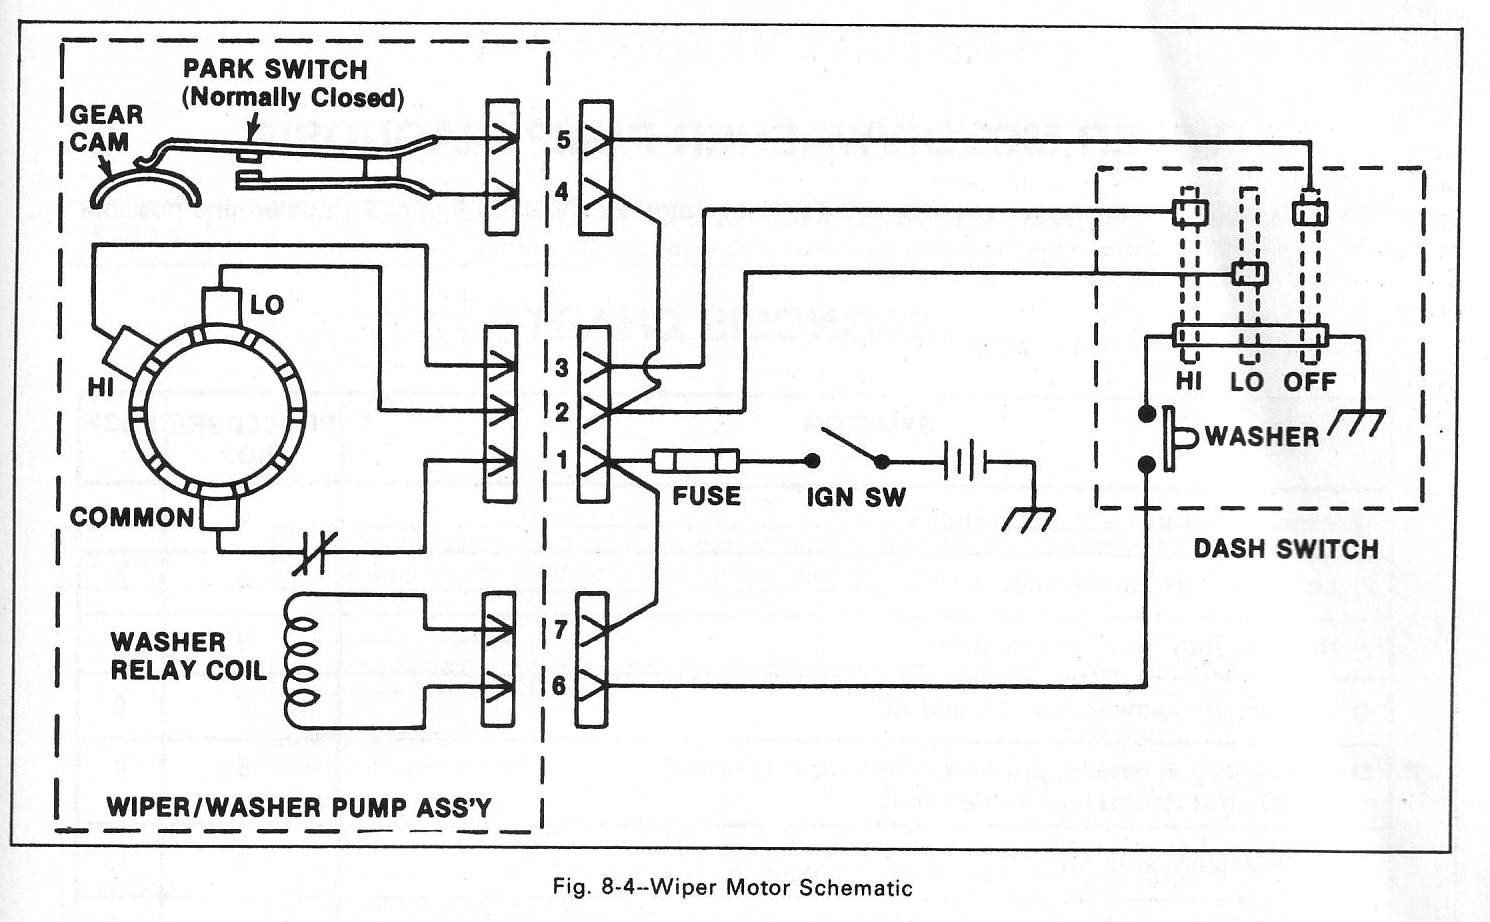 Wiper Motor Wiring Diagram - 14.10.geuzencollege-examentraining.nl on brake wiring diagrams, motor wiring diagrams, chevrolet engine vacuum routing diagrams, power window wiring diagrams, thermostat wiring diagrams, rear wiper wiring diagrams, 1995 volkswagen jetta electrical diagrams, electrical wiring diagrams, radio wiring diagrams, light wiring diagrams, hvac wiring diagrams, alternator wiring diagrams, switch wiring diagrams, truck wiring diagrams, ignition wiring diagrams, steering column wiring diagrams, fuel gauge wiring diagrams, water pump wiring diagrams, starter wiring diagrams, wiper circuit diagrams,